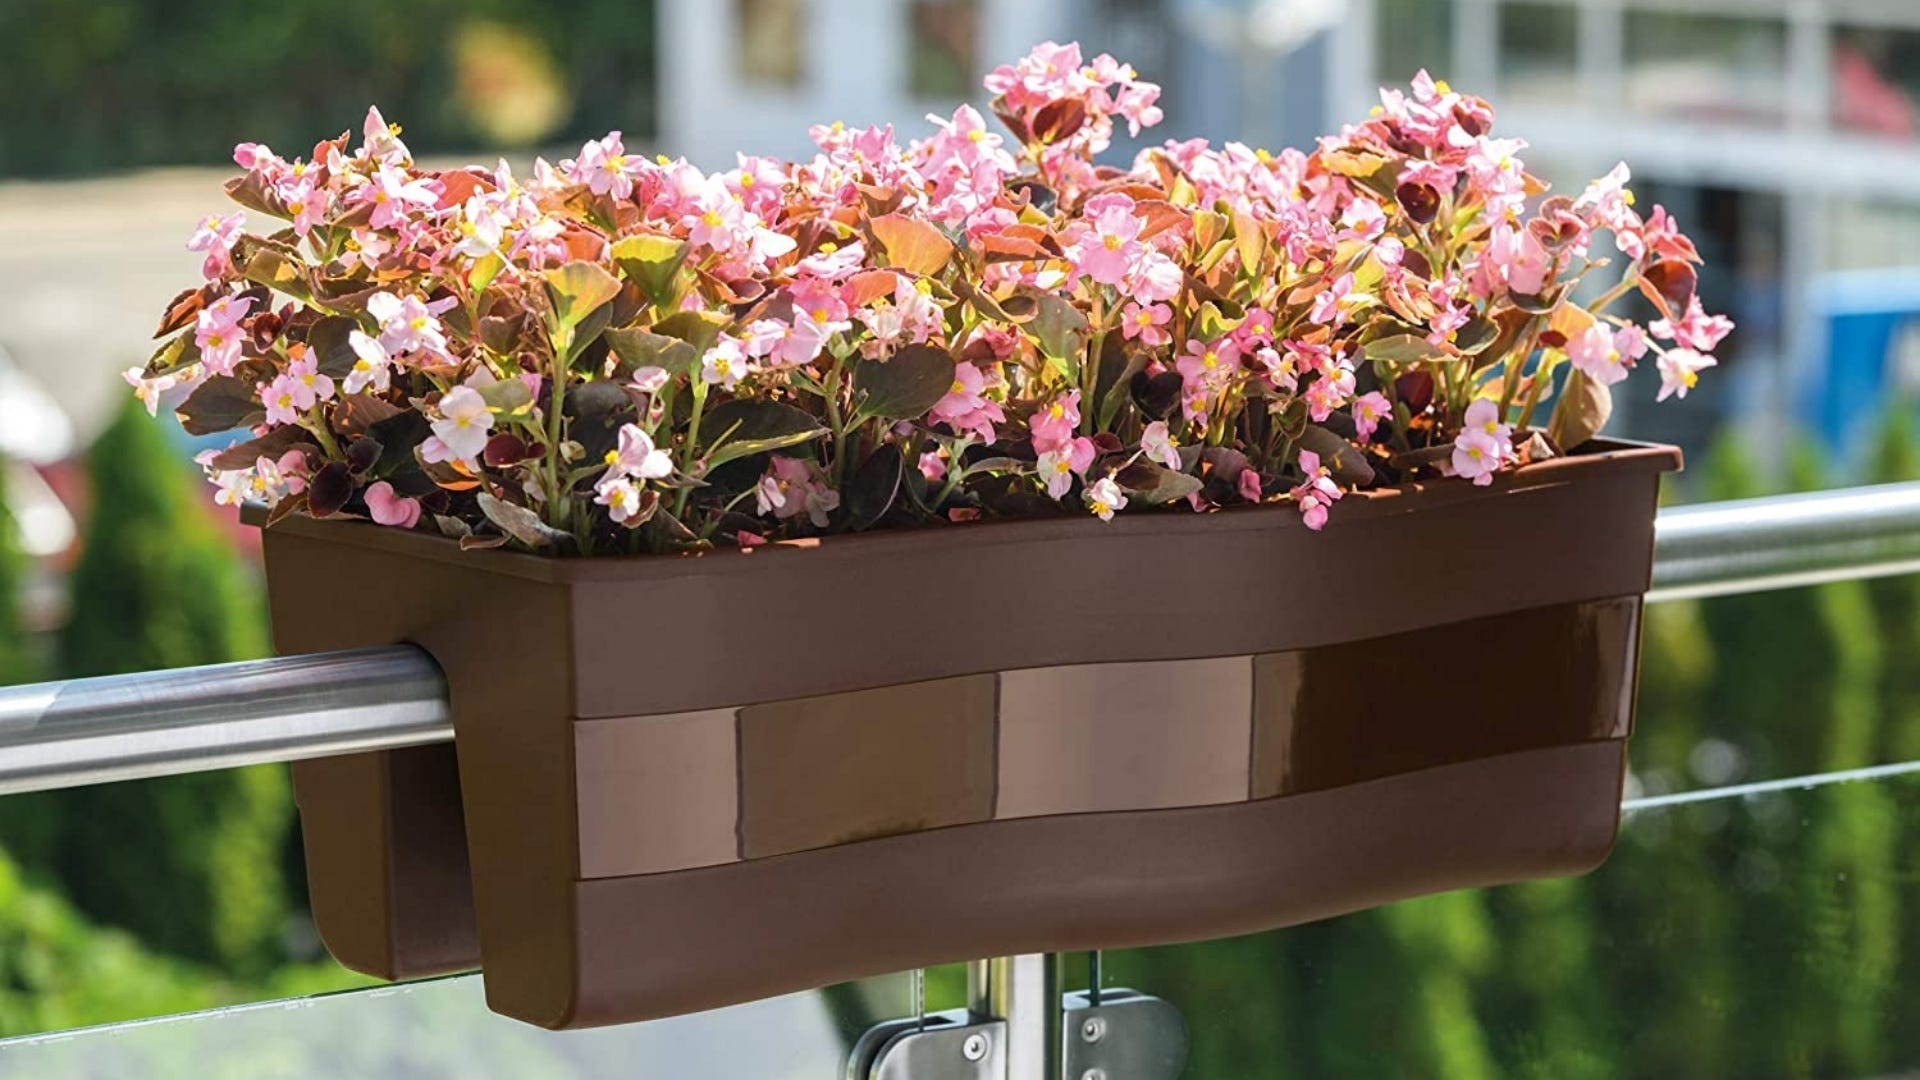 A planter box sits on a balcony railing full of flowers.